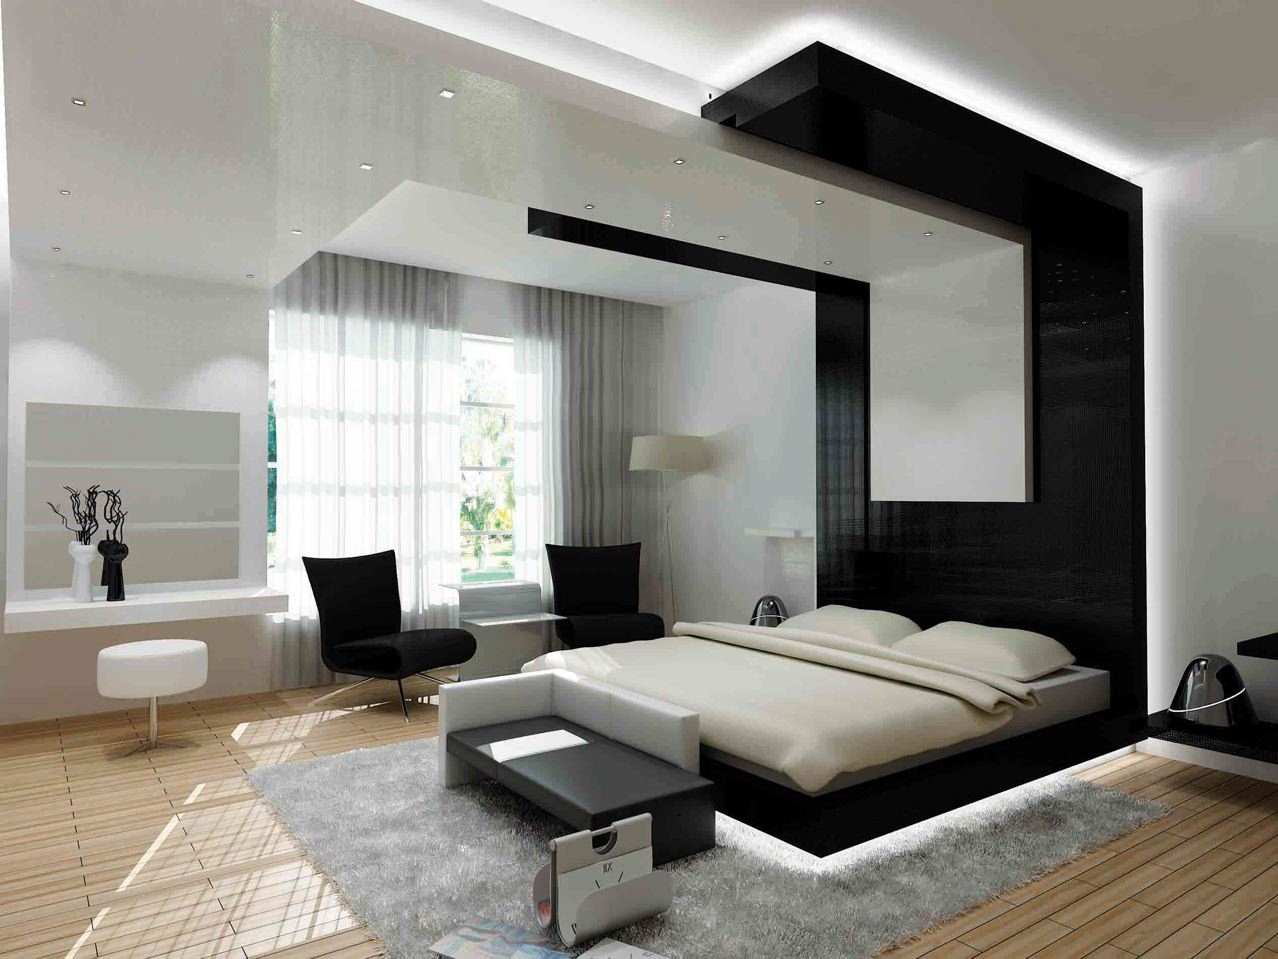 25 bedroom design ideas for your home for Bedroom bedroom ideas